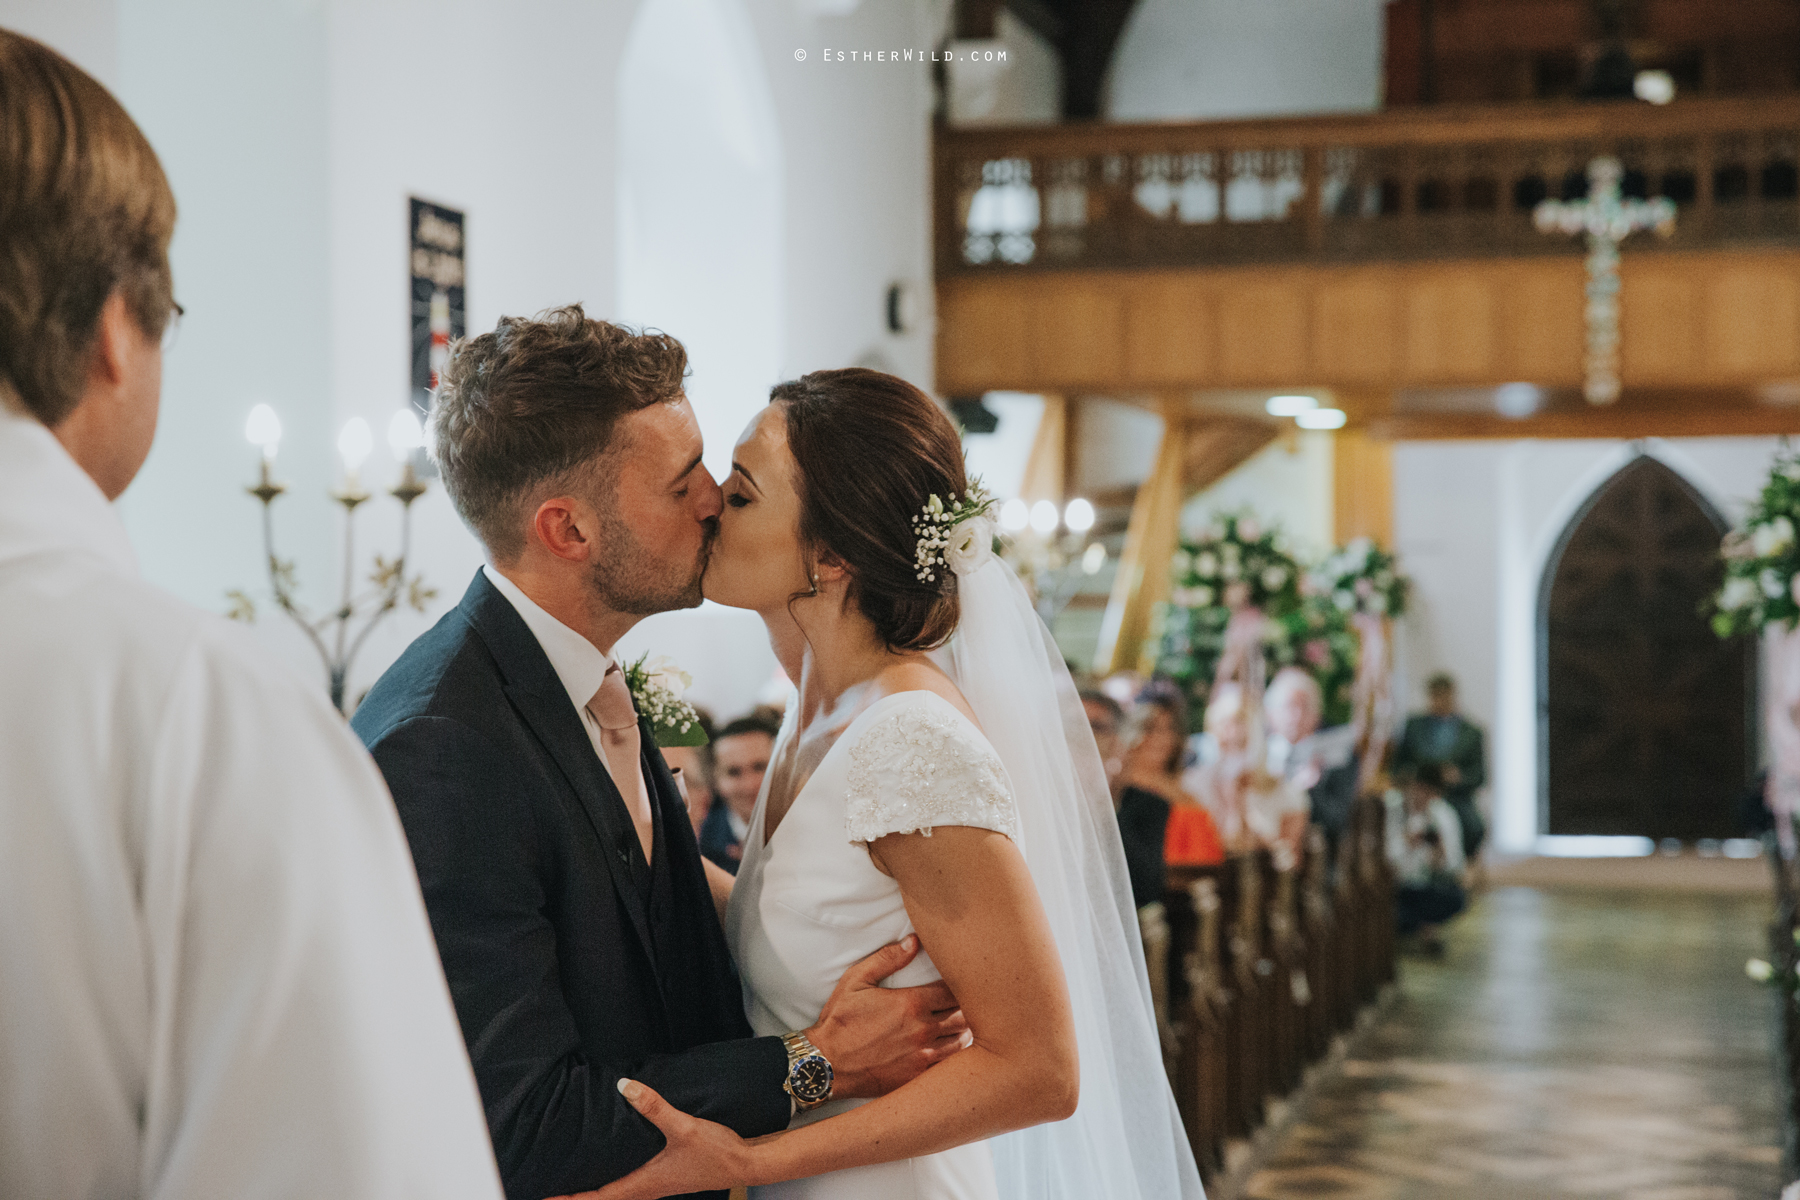 Wootton_Wedding_Copyright_Esther_Wild_Photographer_IMG_0959.jpg